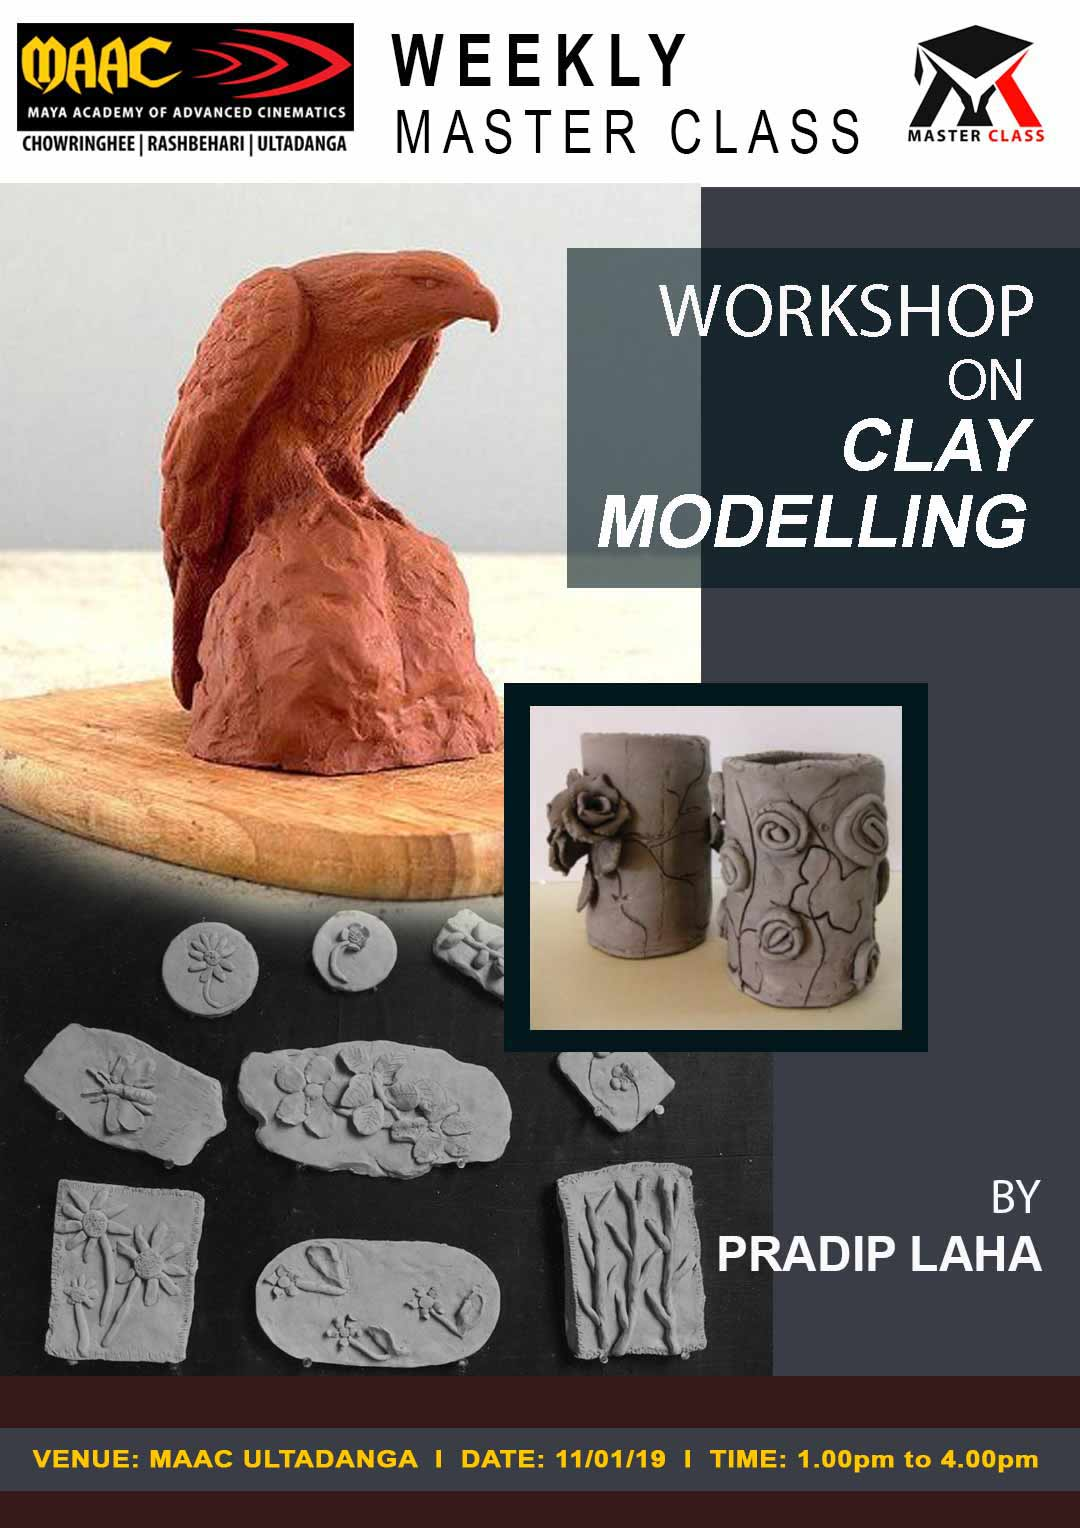 Weekly Master Class on Workshop on Clay Modeling